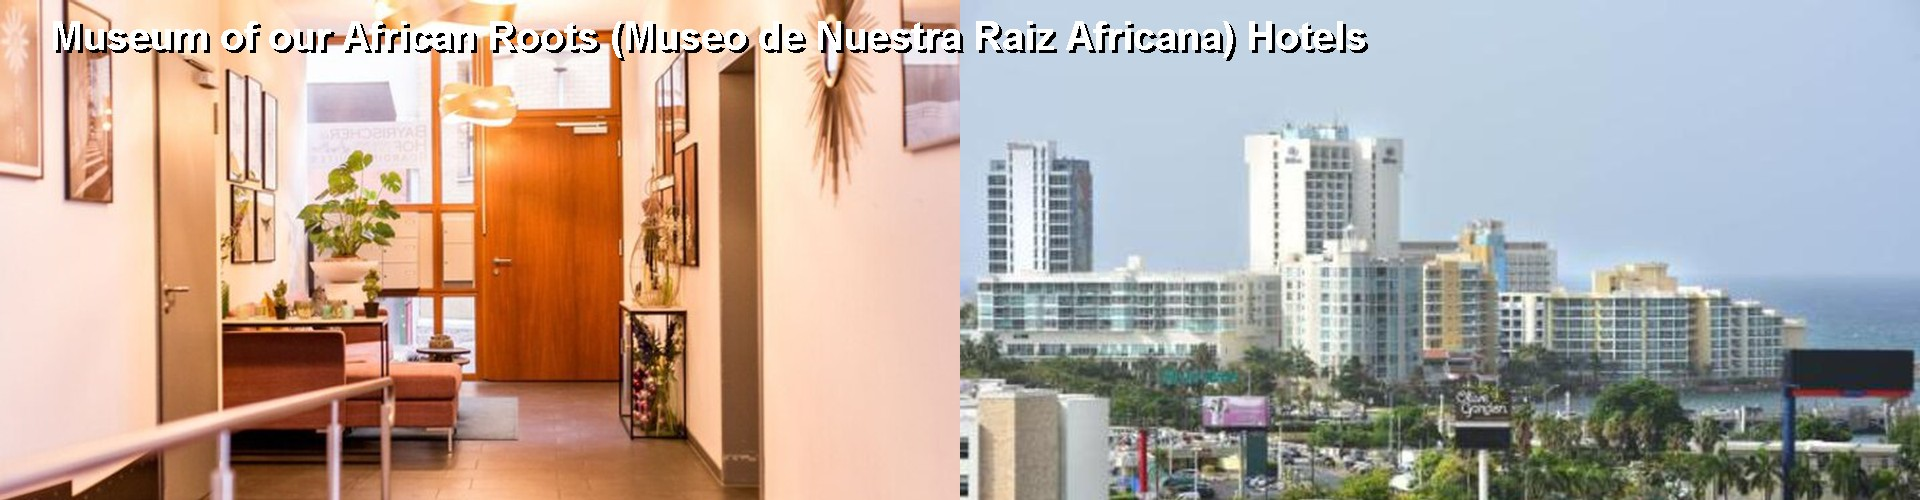 5 Best Hotels near Museum of our African Roots (Museo de Nuestra Raiz Africana)